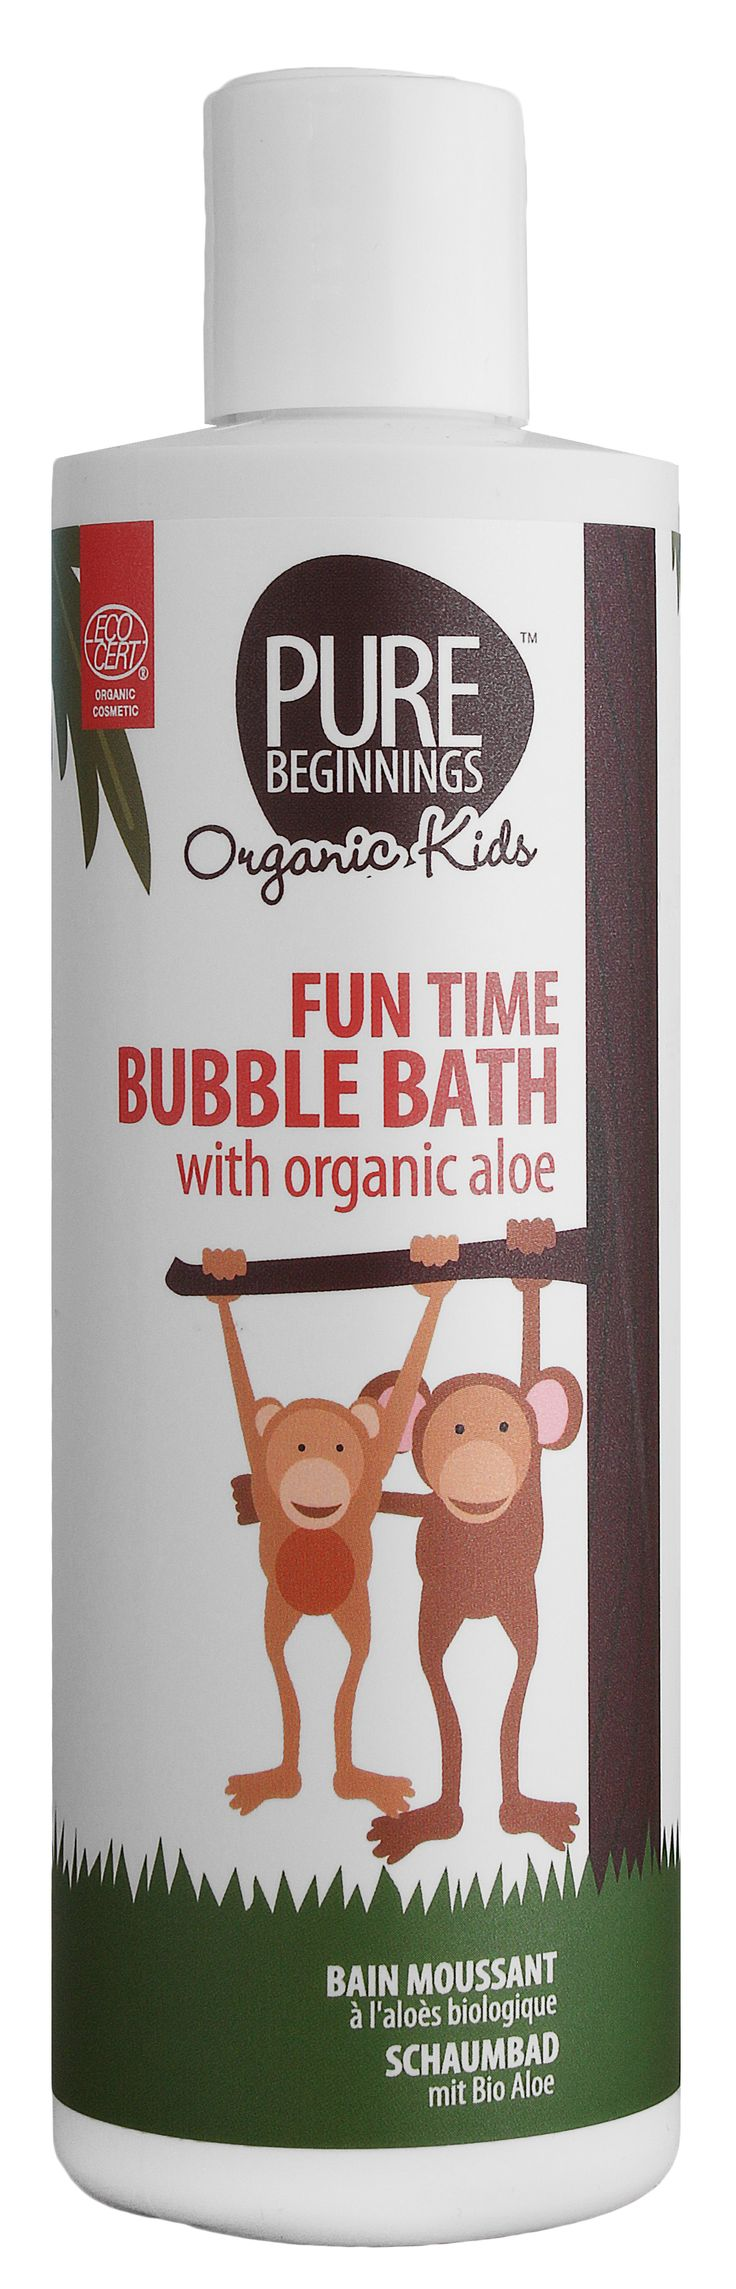 250ml FUN TIME BUBBLE BATH - with organic aloe **Turns children's bath time into fun **pH balanced to that of the skin **Ultra-mild surfactants – will not strip the skin of natural oils  **Organic aloe extract – soothing, antibacterial **Organic orange peel oil – calming and anti-inflammatory properties **Perfect for girls who are prone to thrush **Organic ylang ylang flower oil – fragrant skin balancing oil with relaxing properties